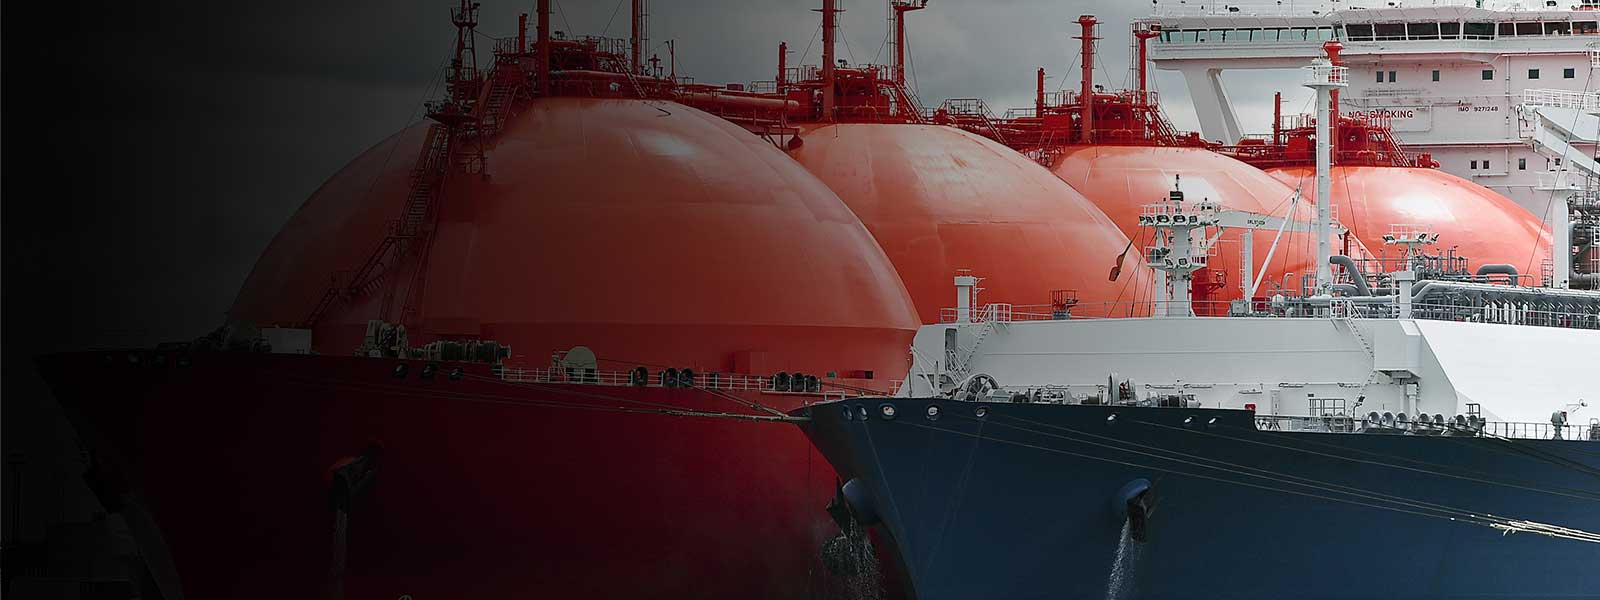 The Shale Revolution and US LNG: The Path Ahead